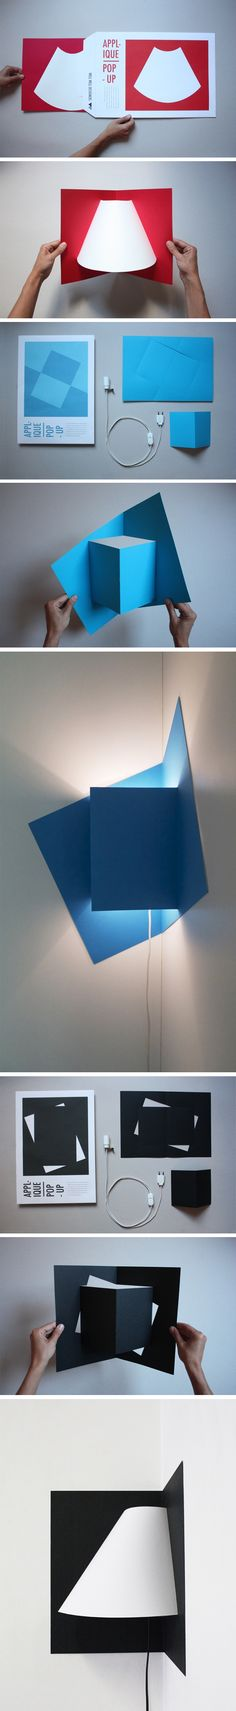 Pop-Up-Light-Well-Well-Designers-2